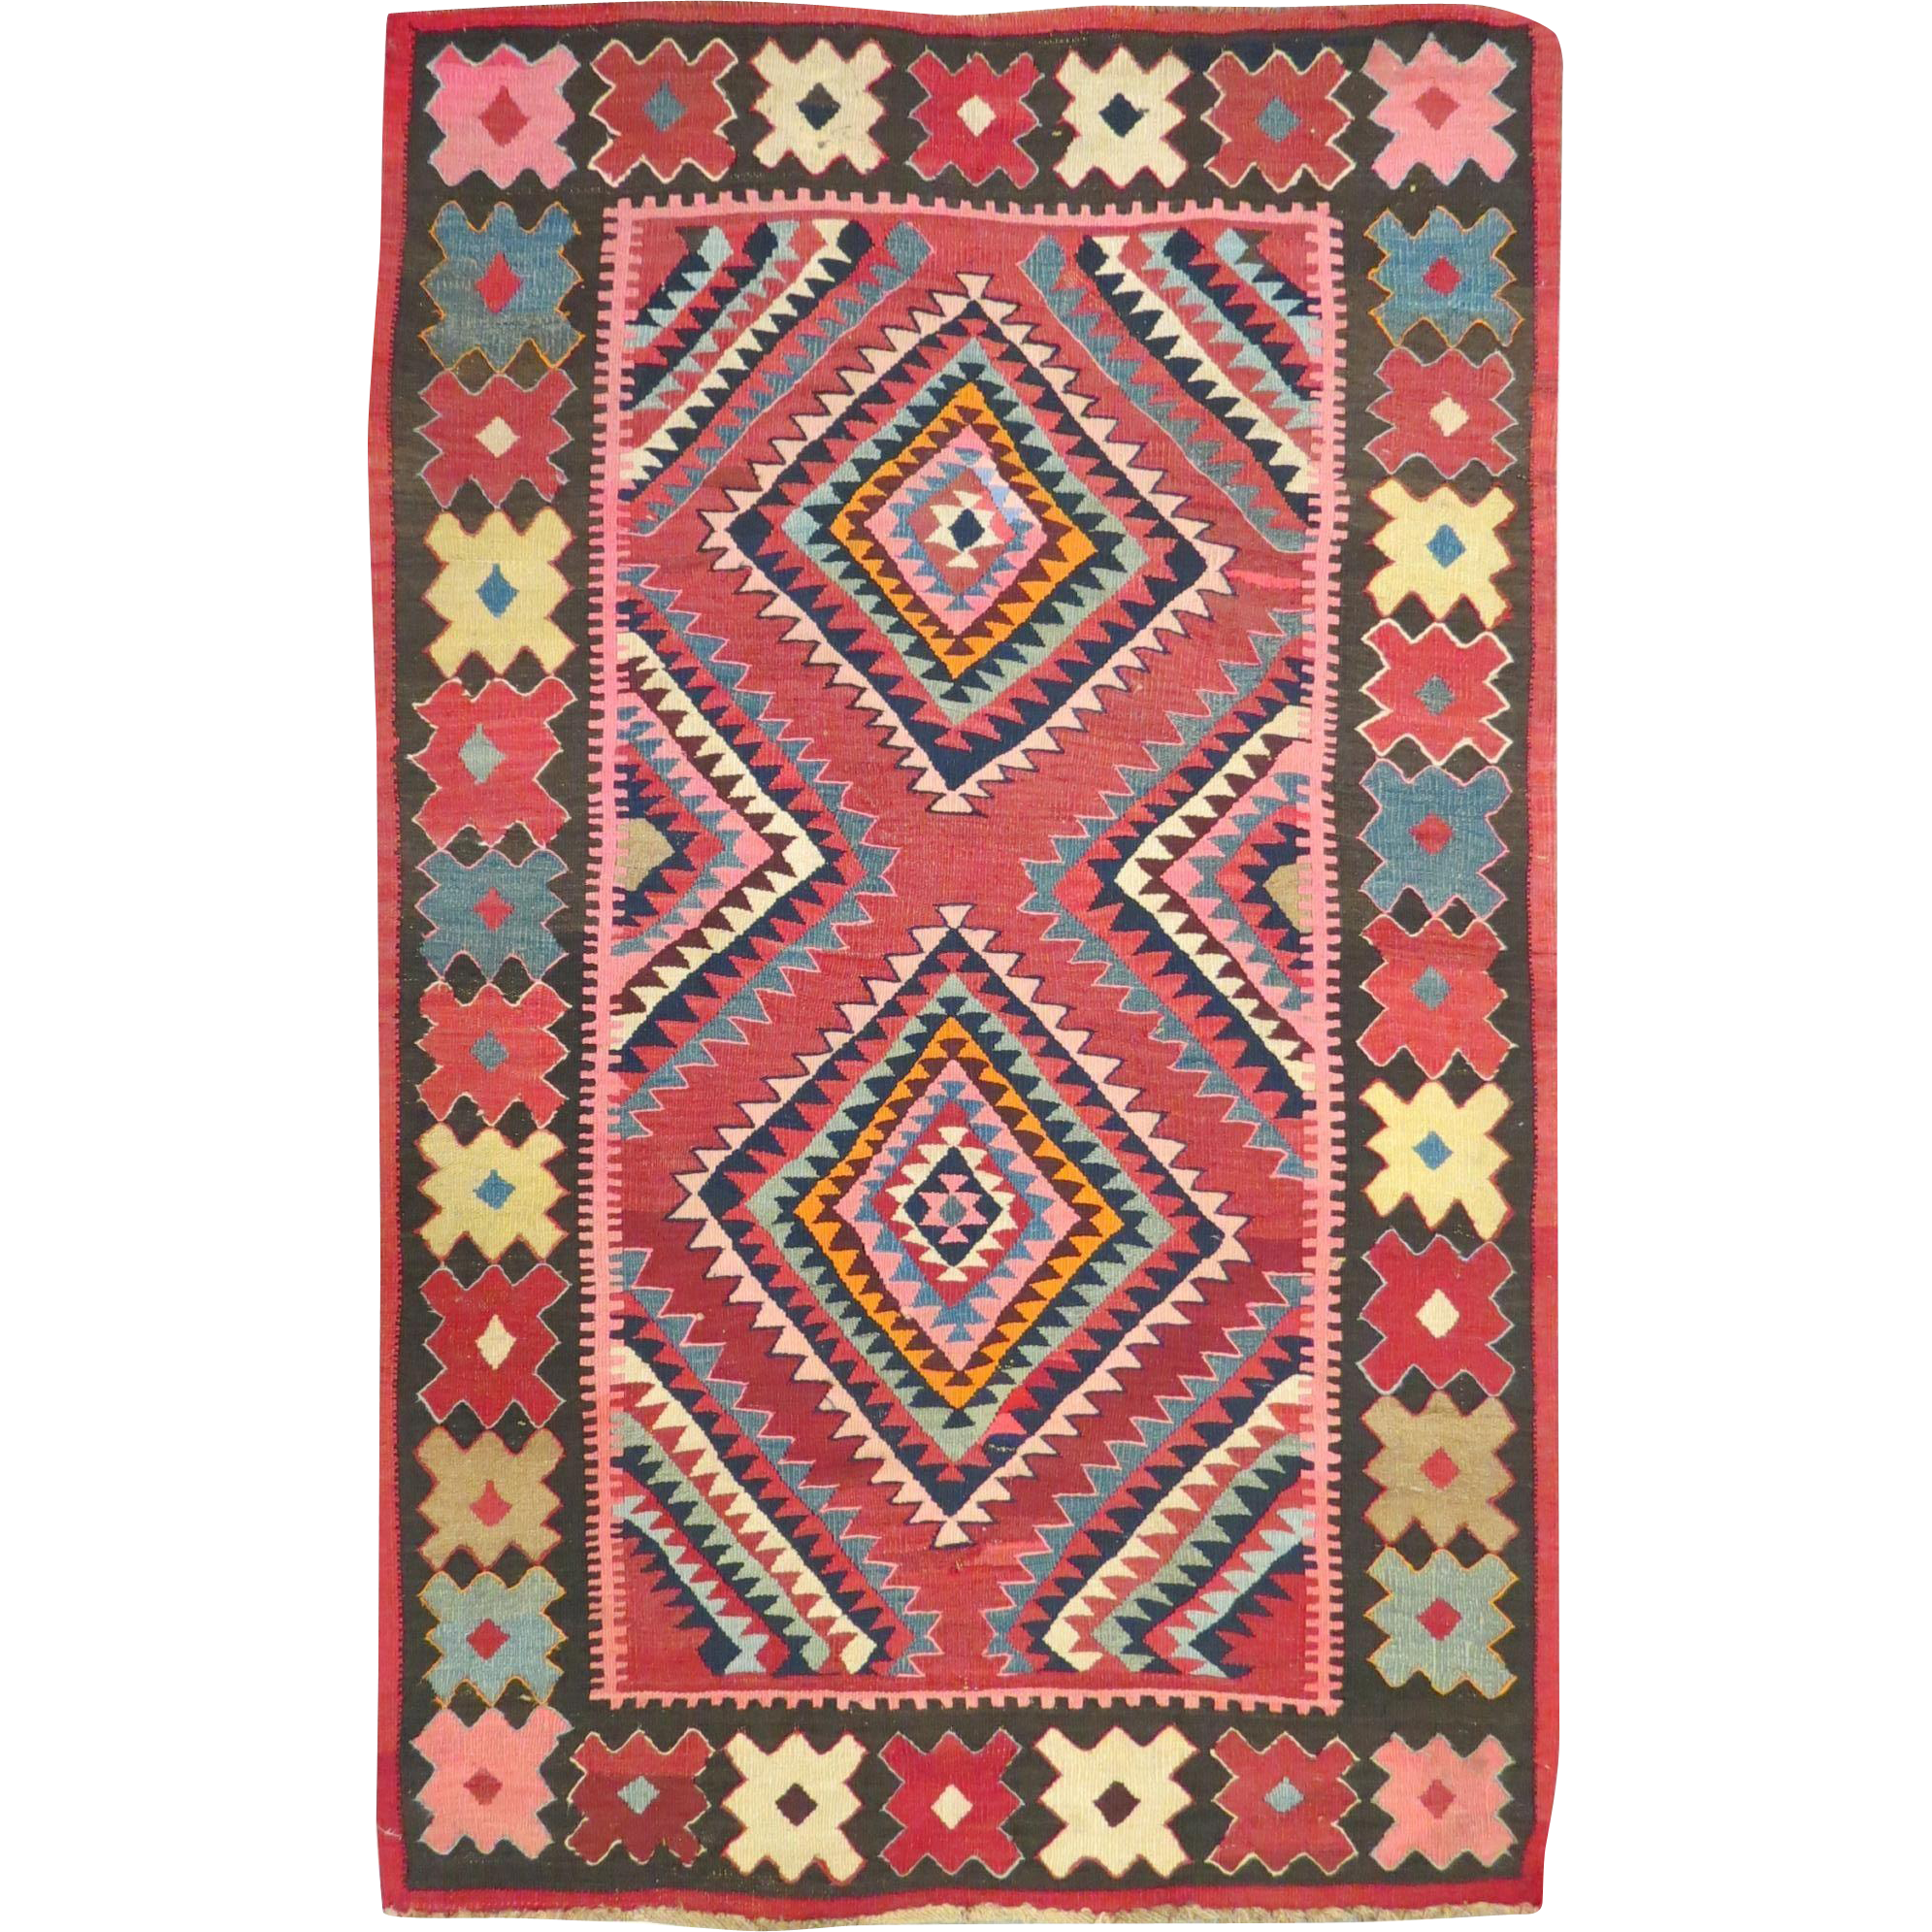 This Persian Made Antique Shahsevan Kilim Was Made On Or